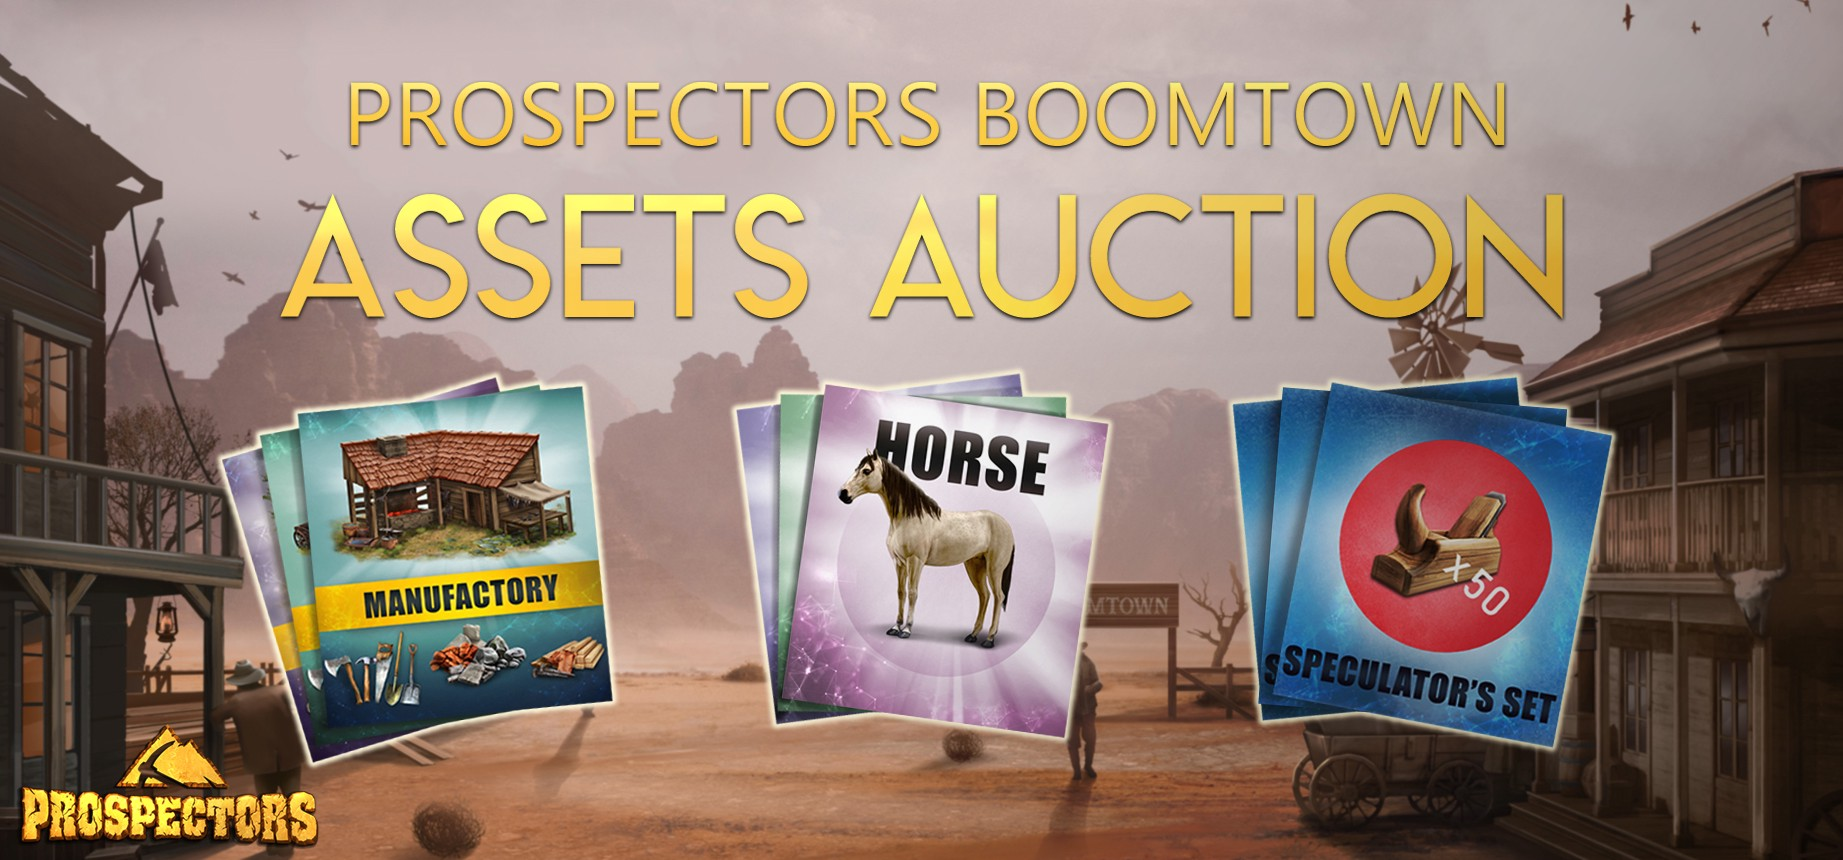 Everything you need to know about the Boomtown assets auction